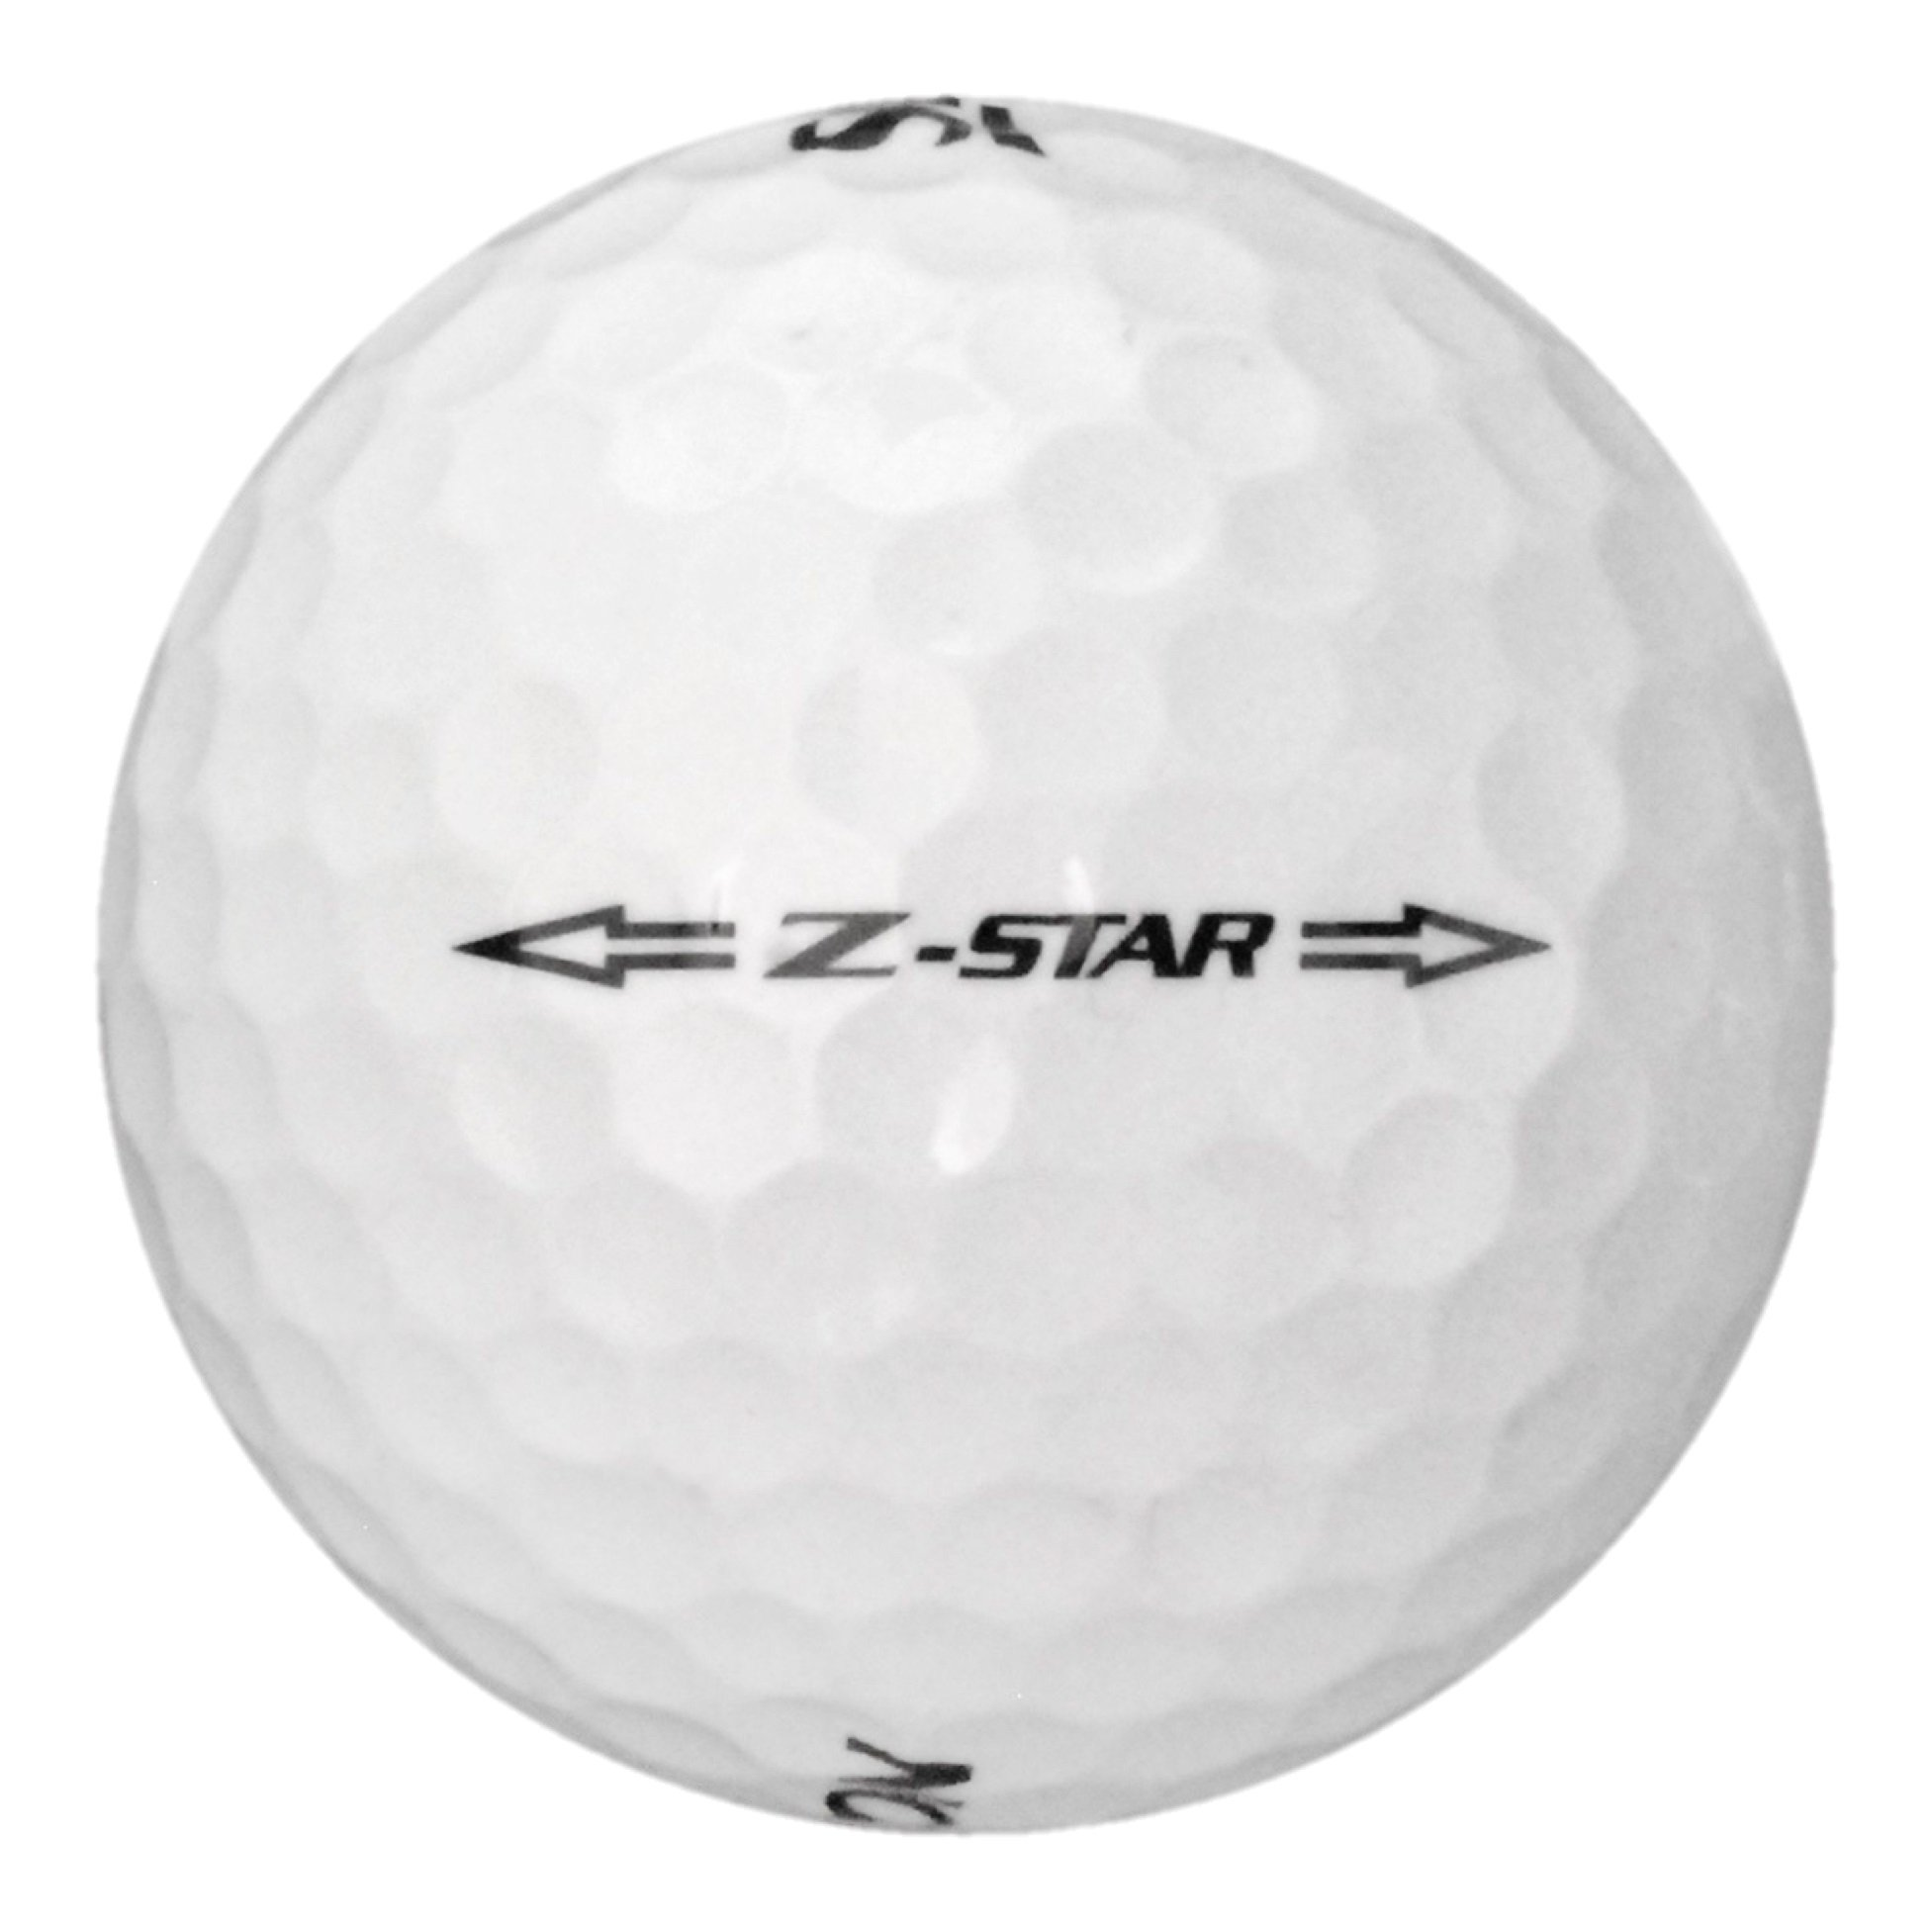 108 Srixon Z-Star - Value (AAA) Grade - Recycled (Used) Golf Balls by Srixon (Image #2)